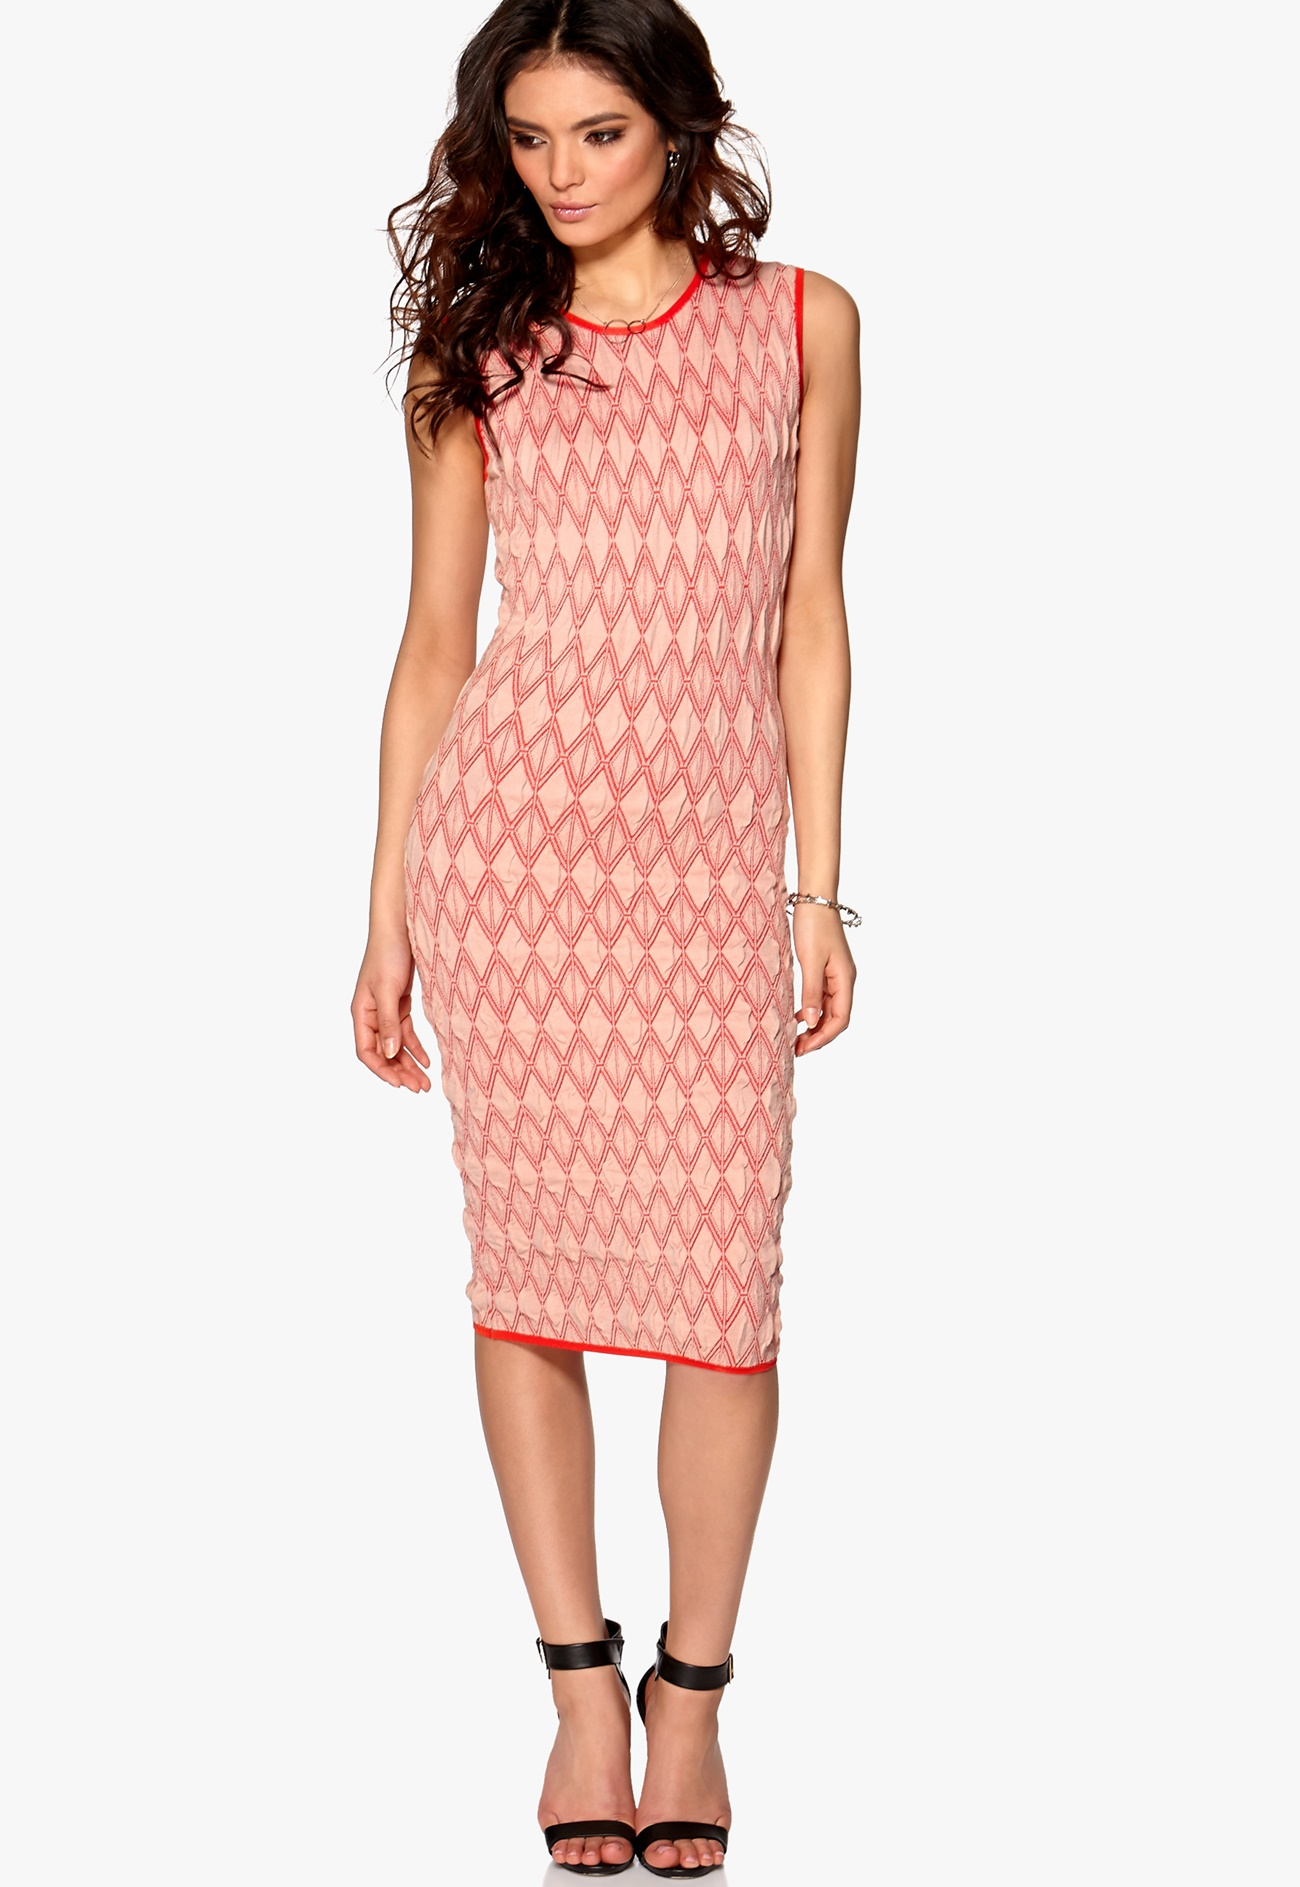 DAGMAR Indra Knitted Dress Rose Pink - Bubbleroom